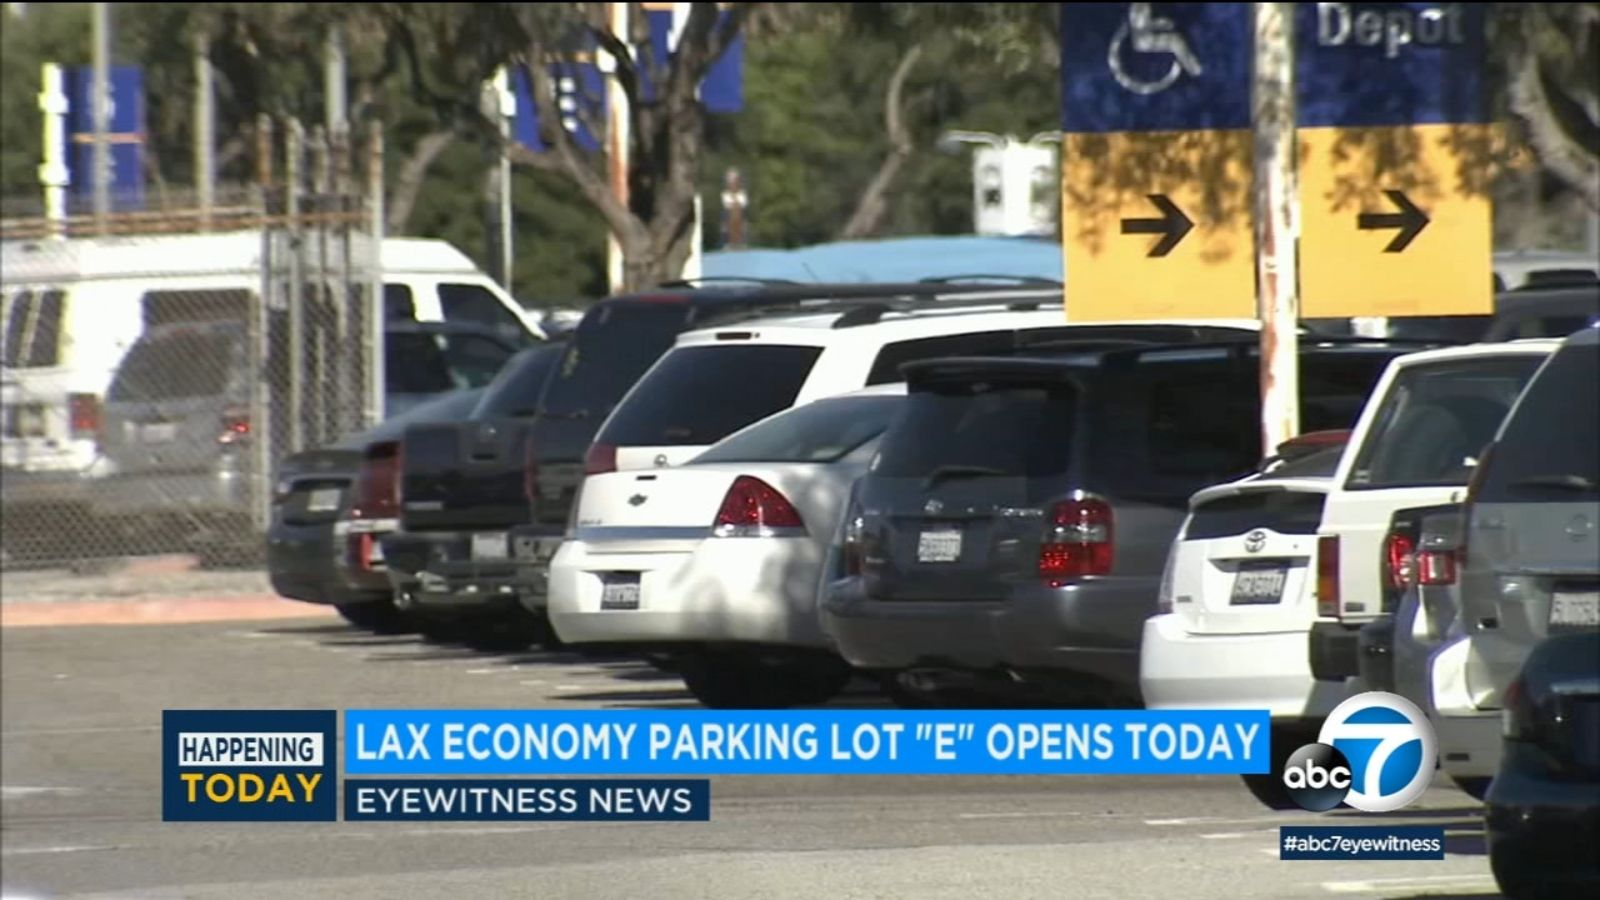 Lax Airport Map Airport Parking Emirates Airline Transaero Airlines